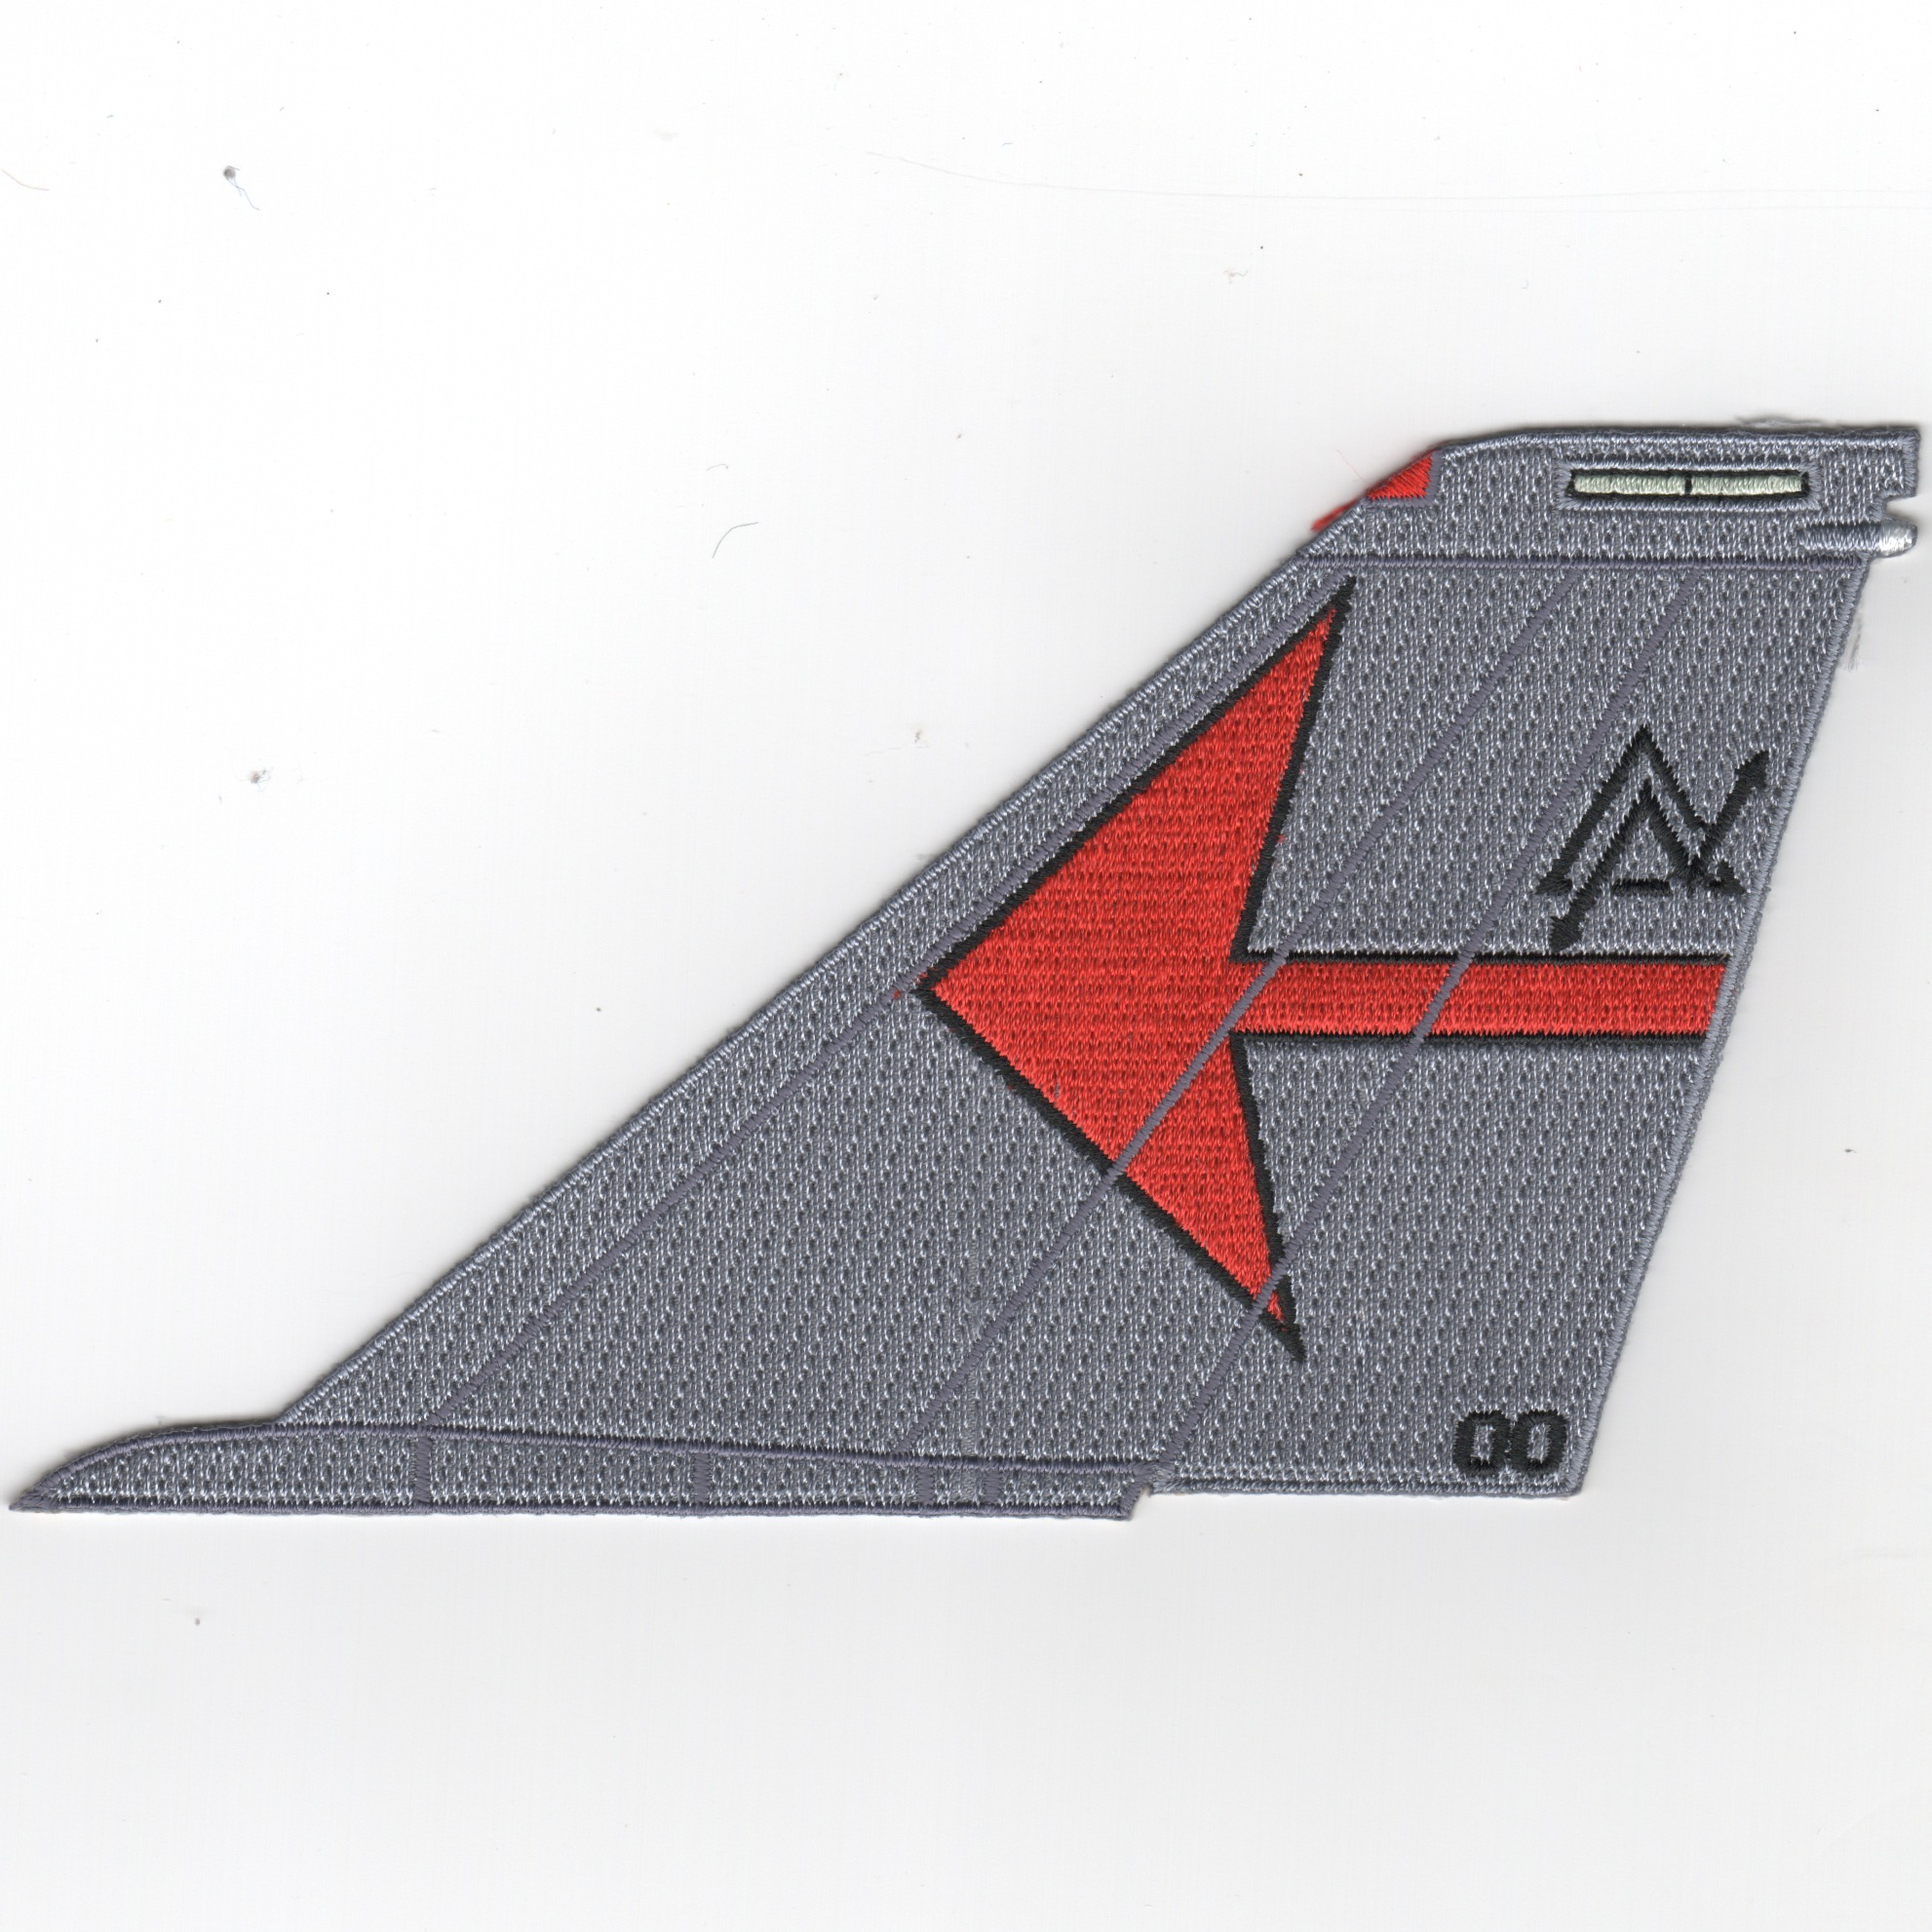 VF-301 F-14 Tailfin (No Text)